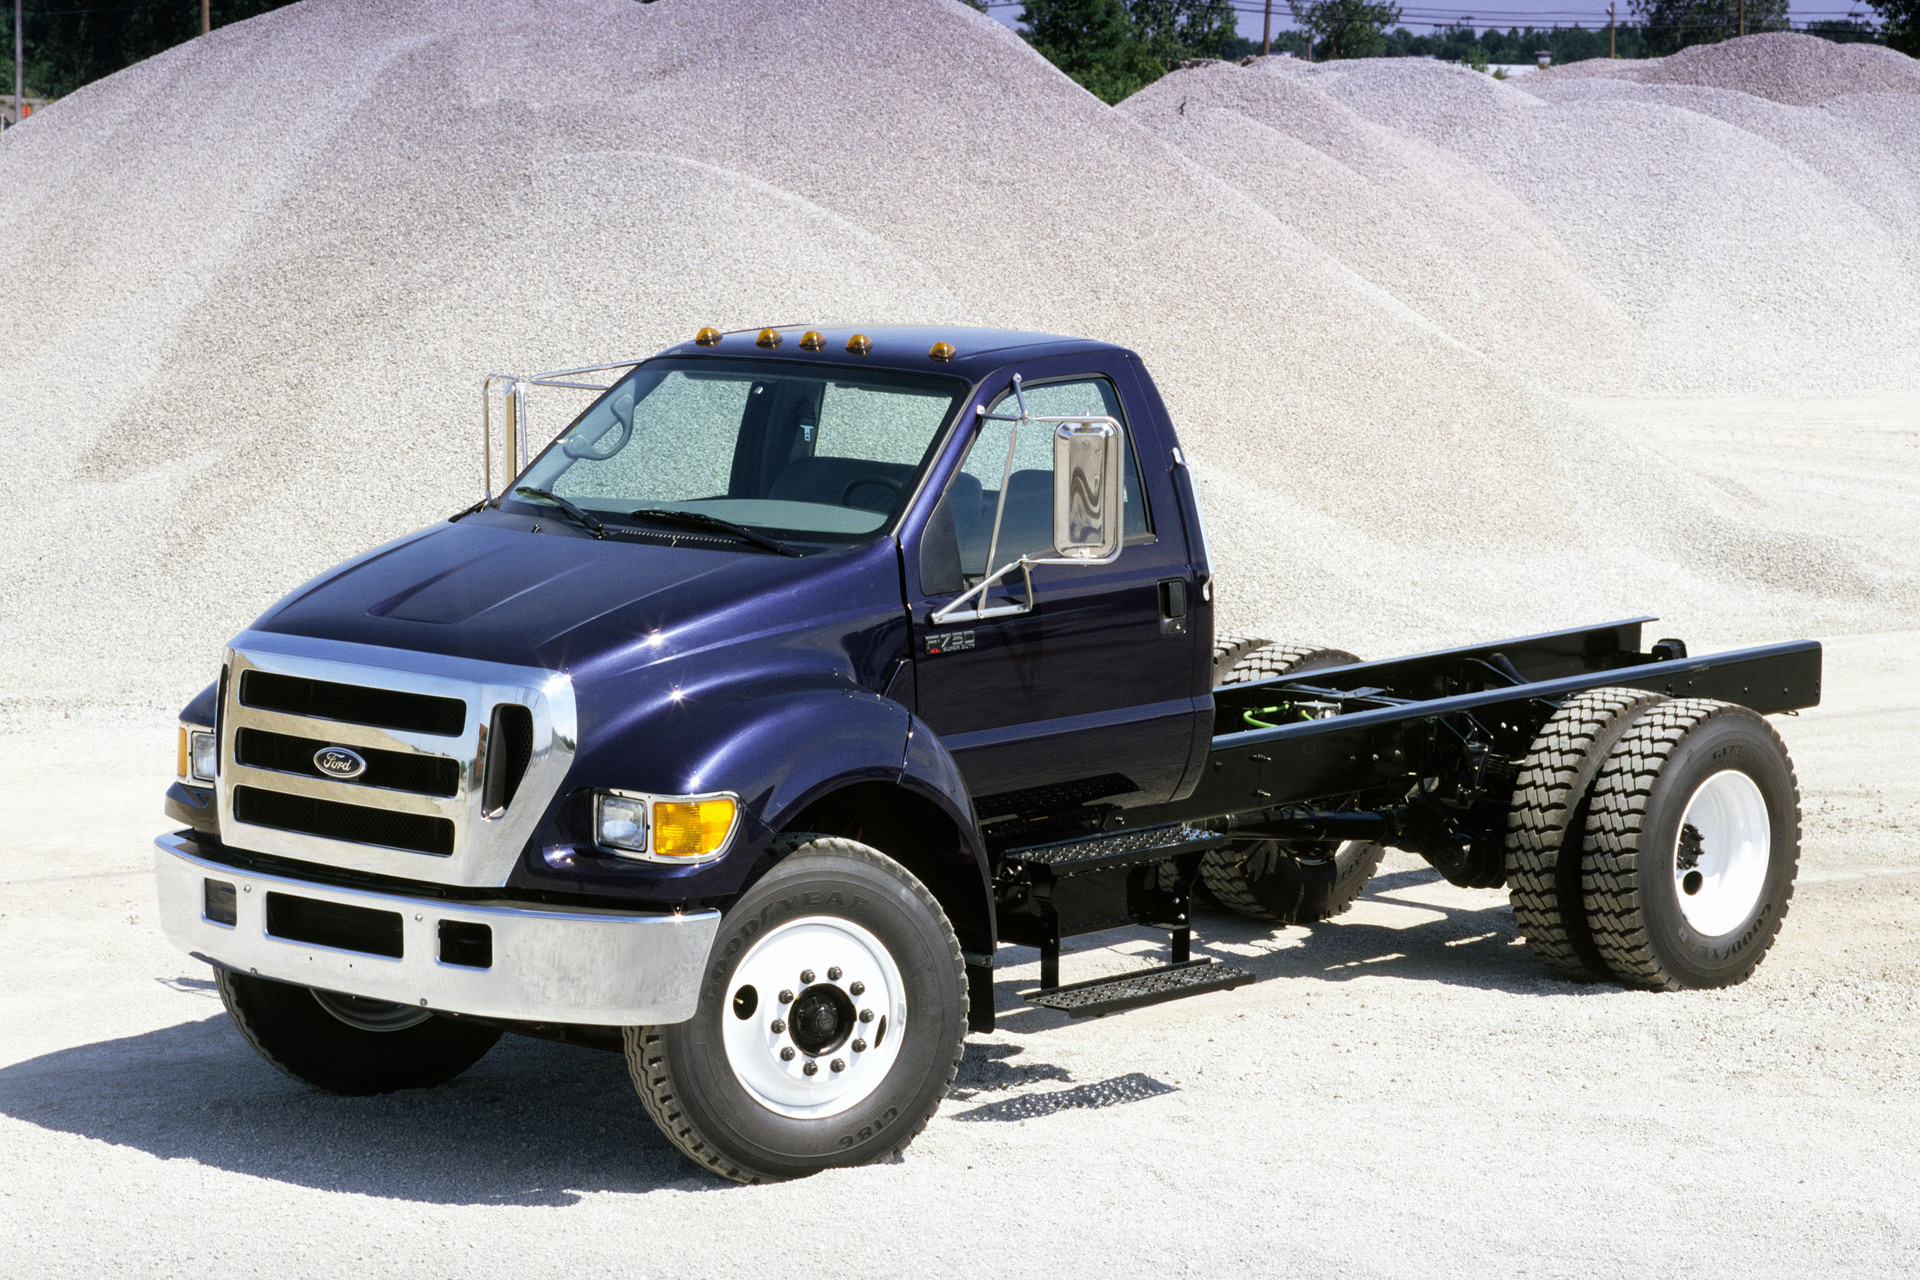 Ford F 750 Photos Photogallery With 11 Pics Carsbase Com